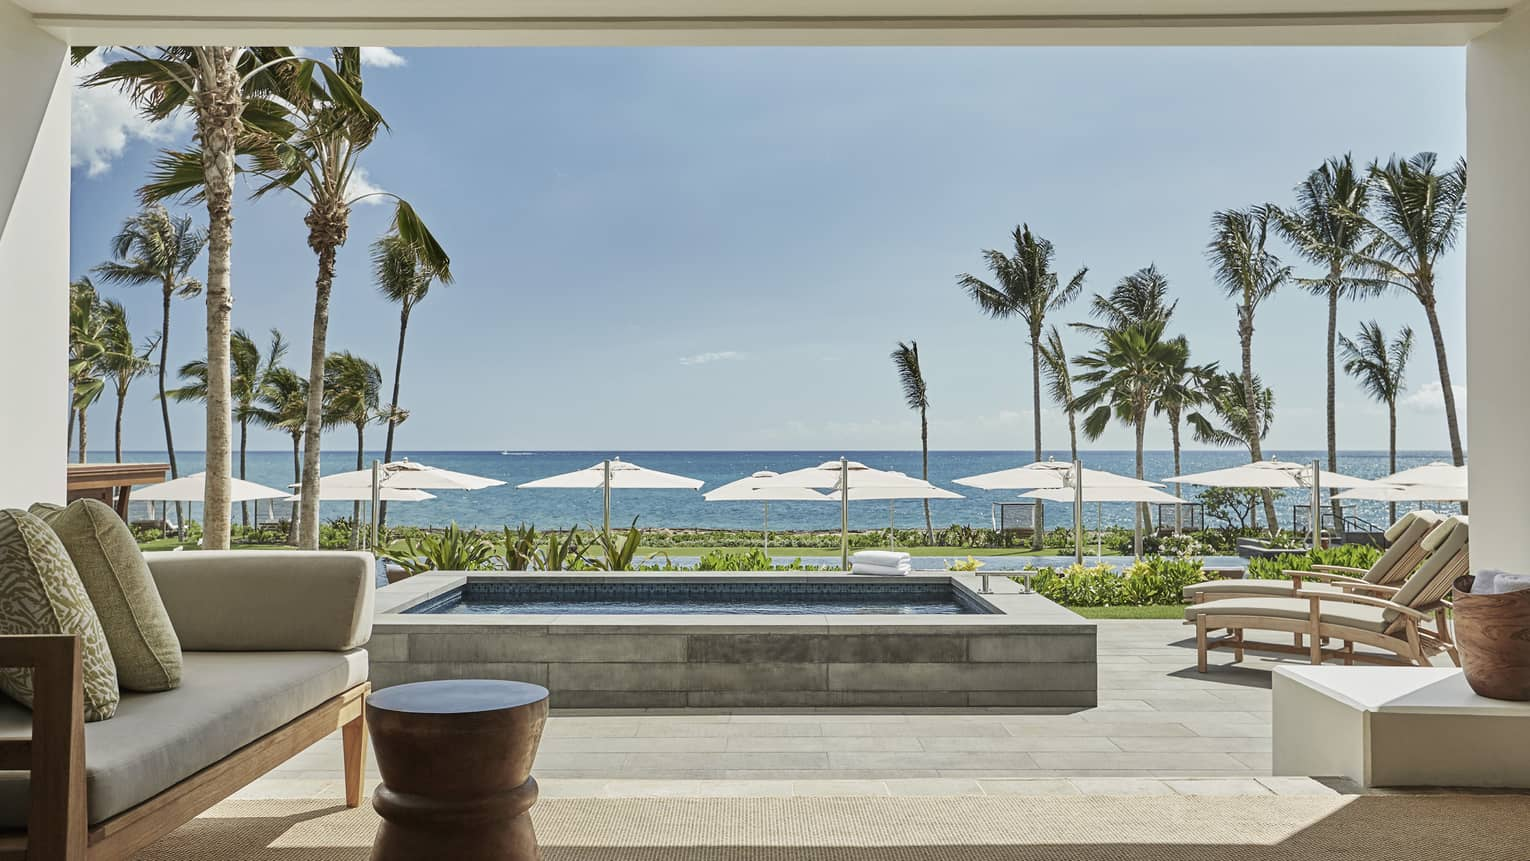 Pacific Suite open to wall to patio with stone plunge pool, lounge chairs, ocean views